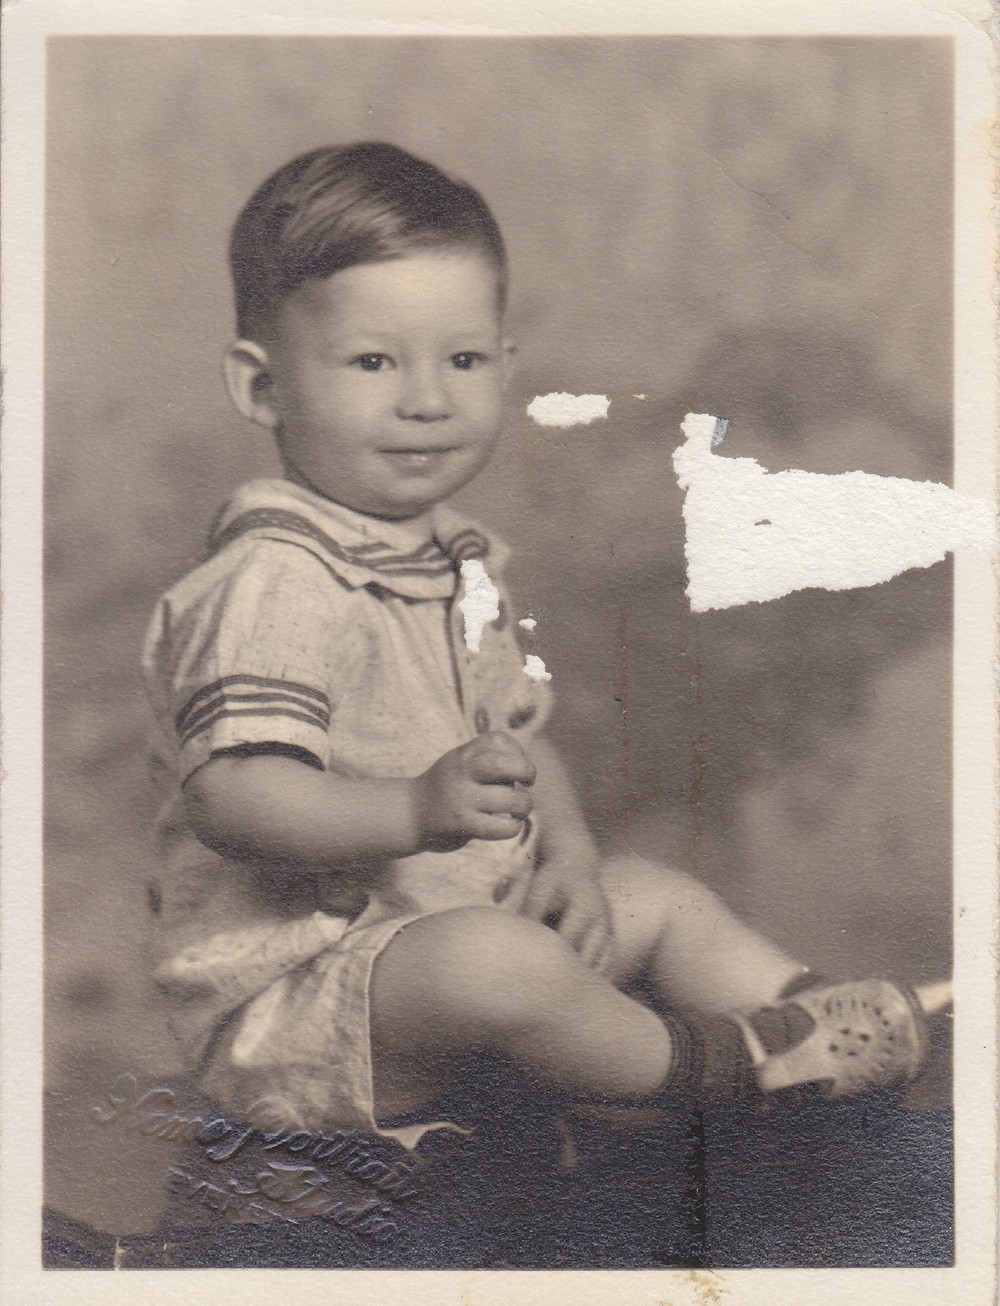 Love to Auntie Jean from Arthur Val. I was almost 2 yrs. old when this was taken. -